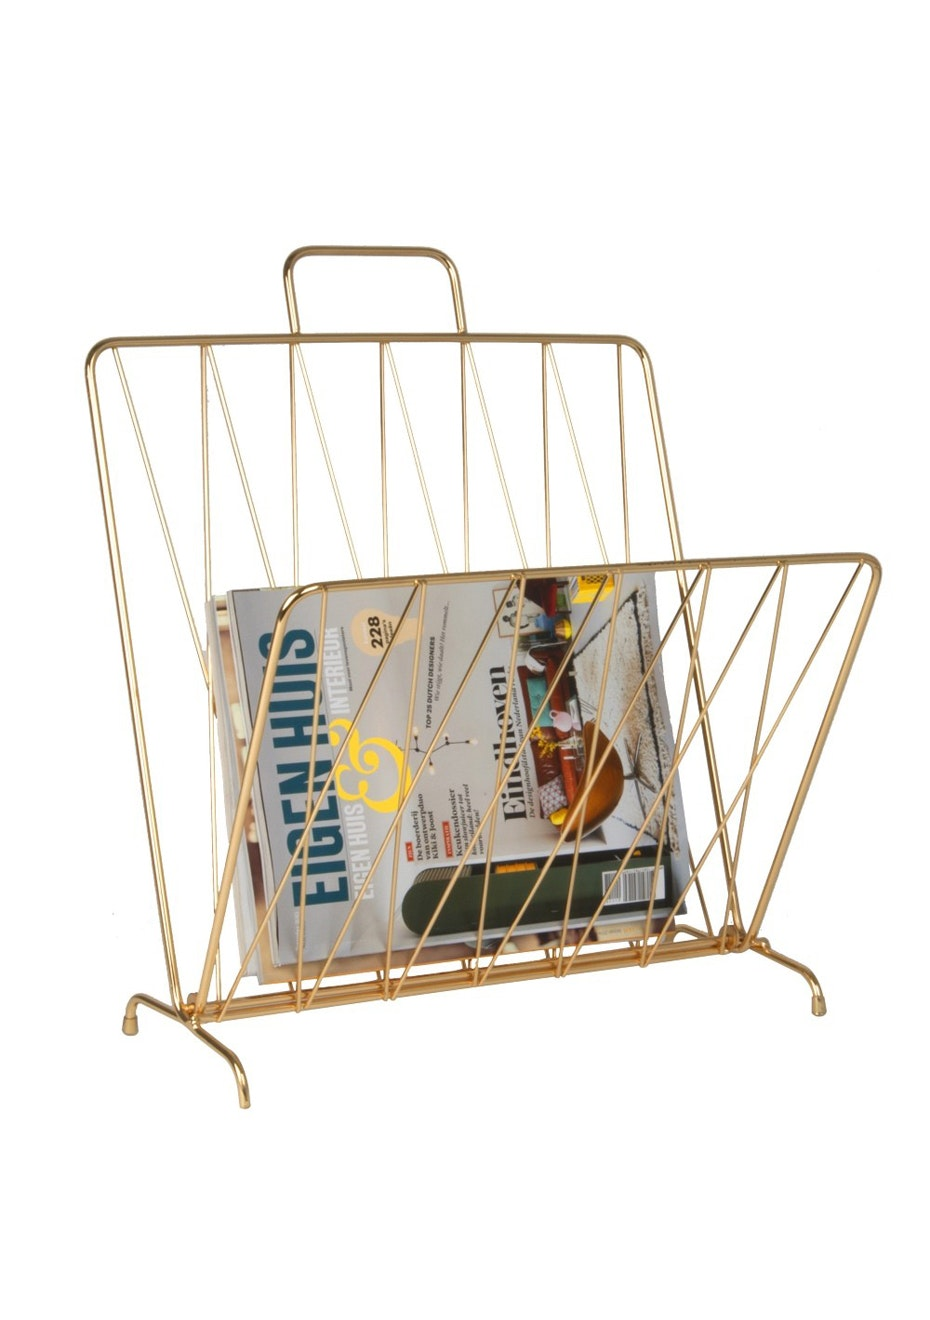 Pt Home - Magazine Rack 'Diamond Raster' - Gold